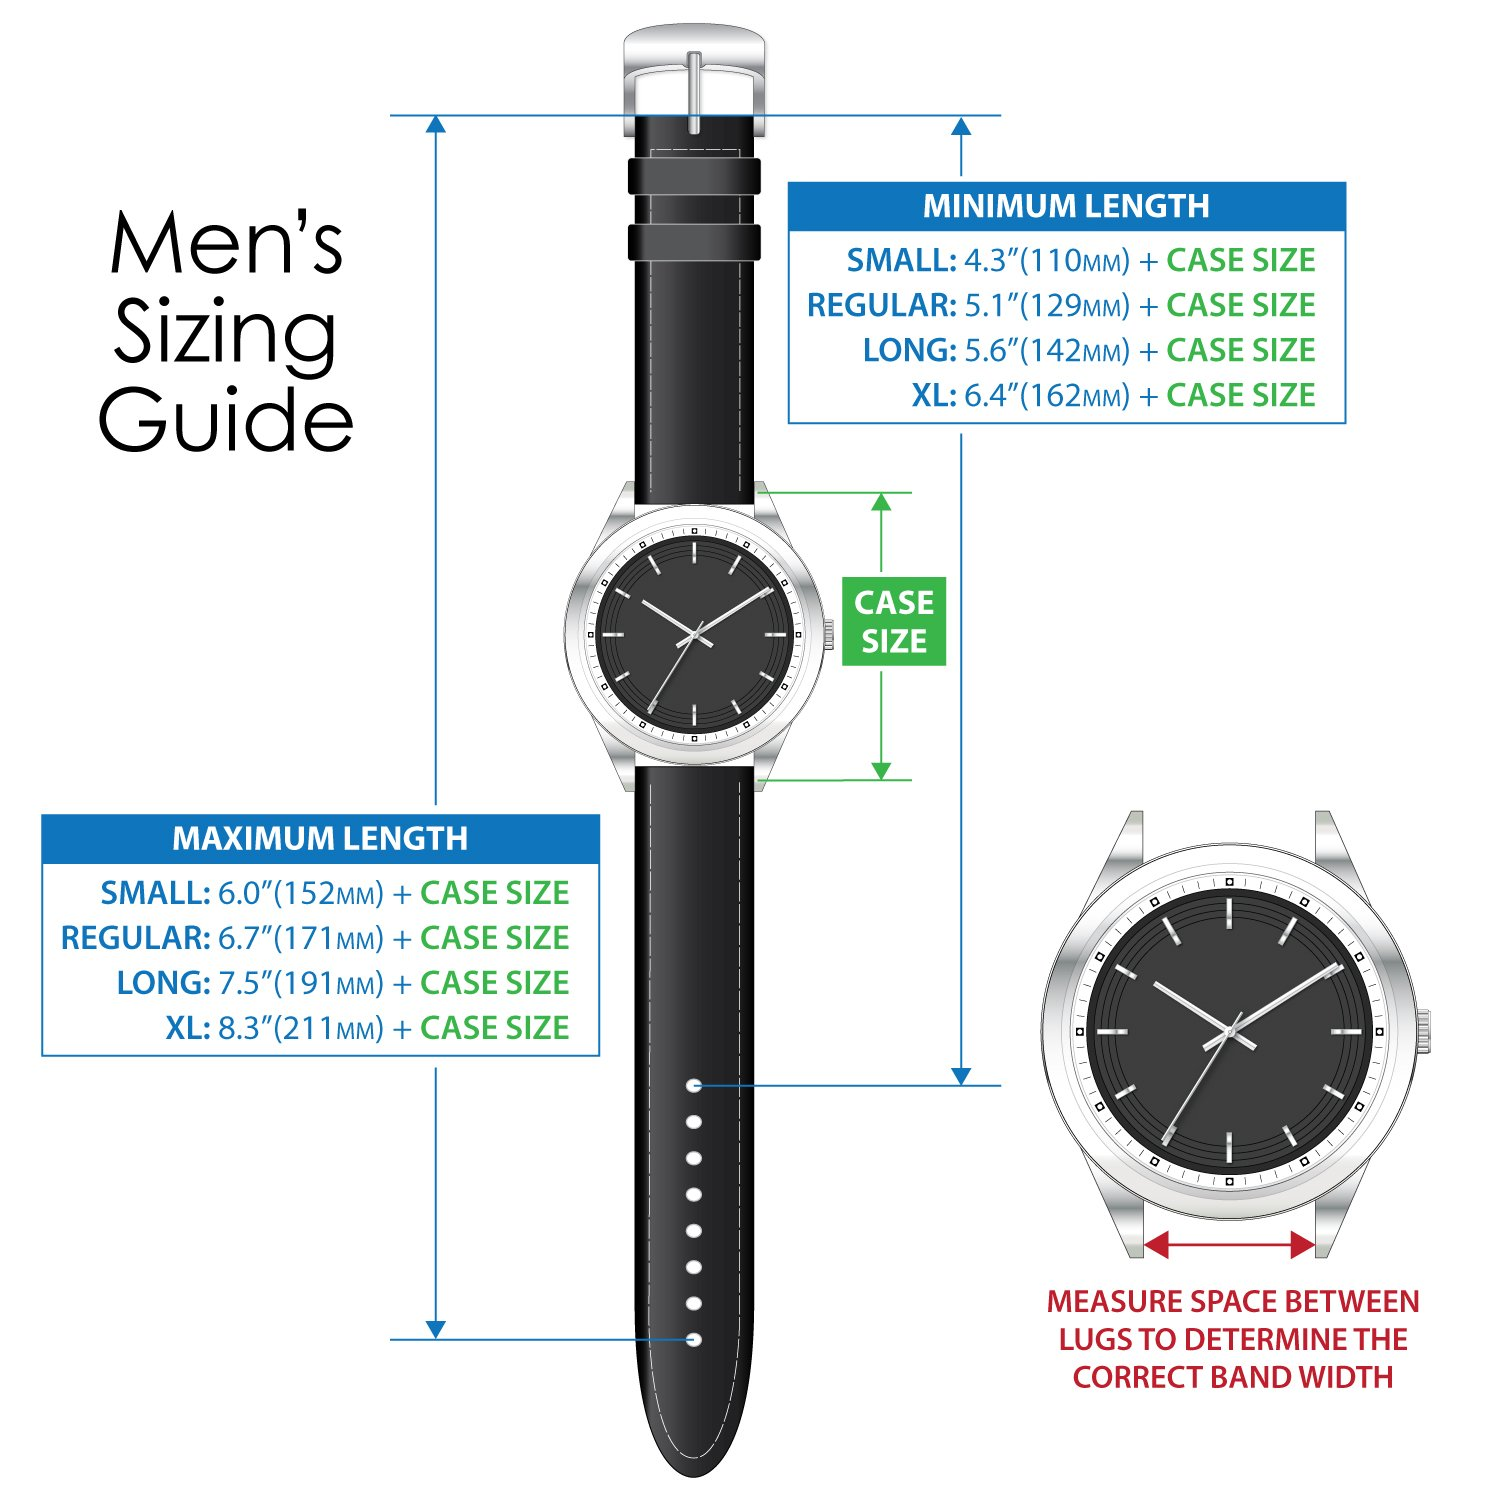 Speidel Genuine Leather Watch Band Black Classic Calf Skin Replacement Strap,19mm, Stainless Steel Metal Buckle Clasp, Watchband Fits Most Watch Brand